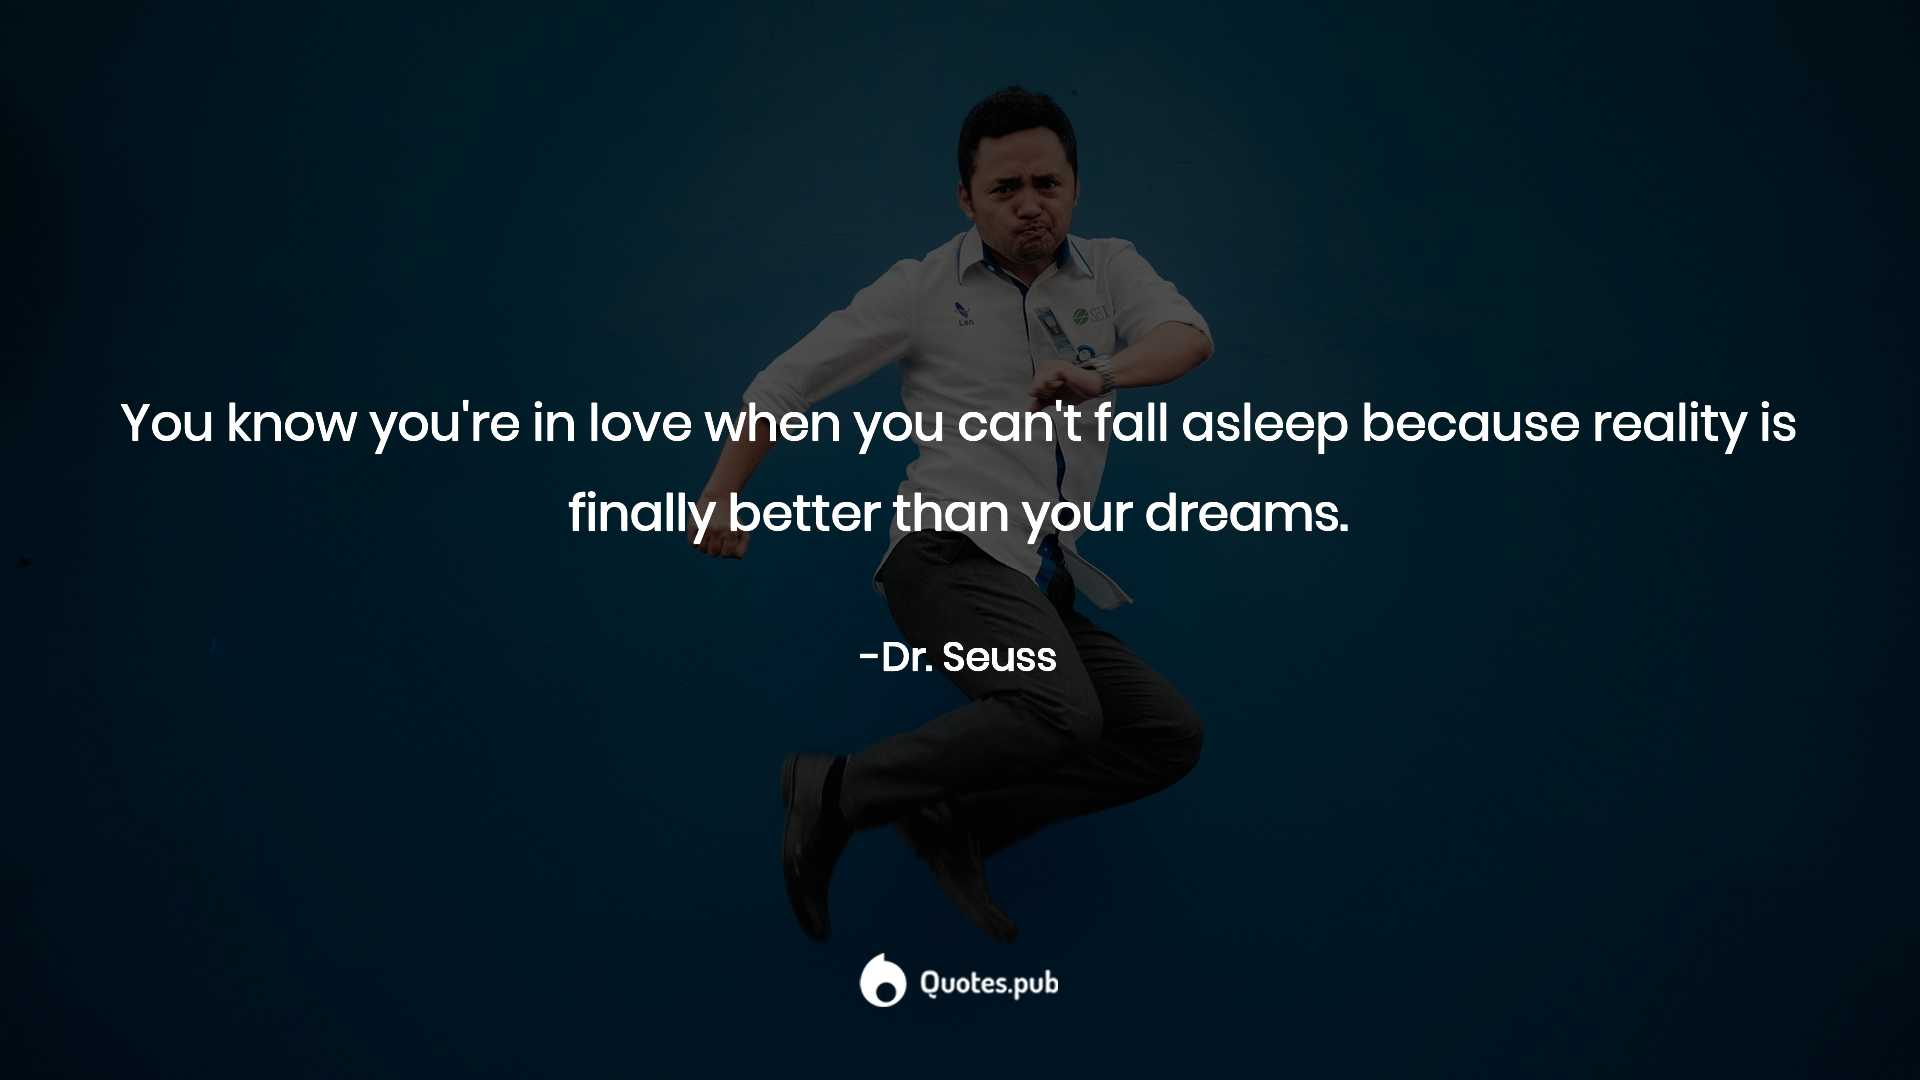 You Know Youre In Love When You Cant Fal Dr Seuss Quotespub